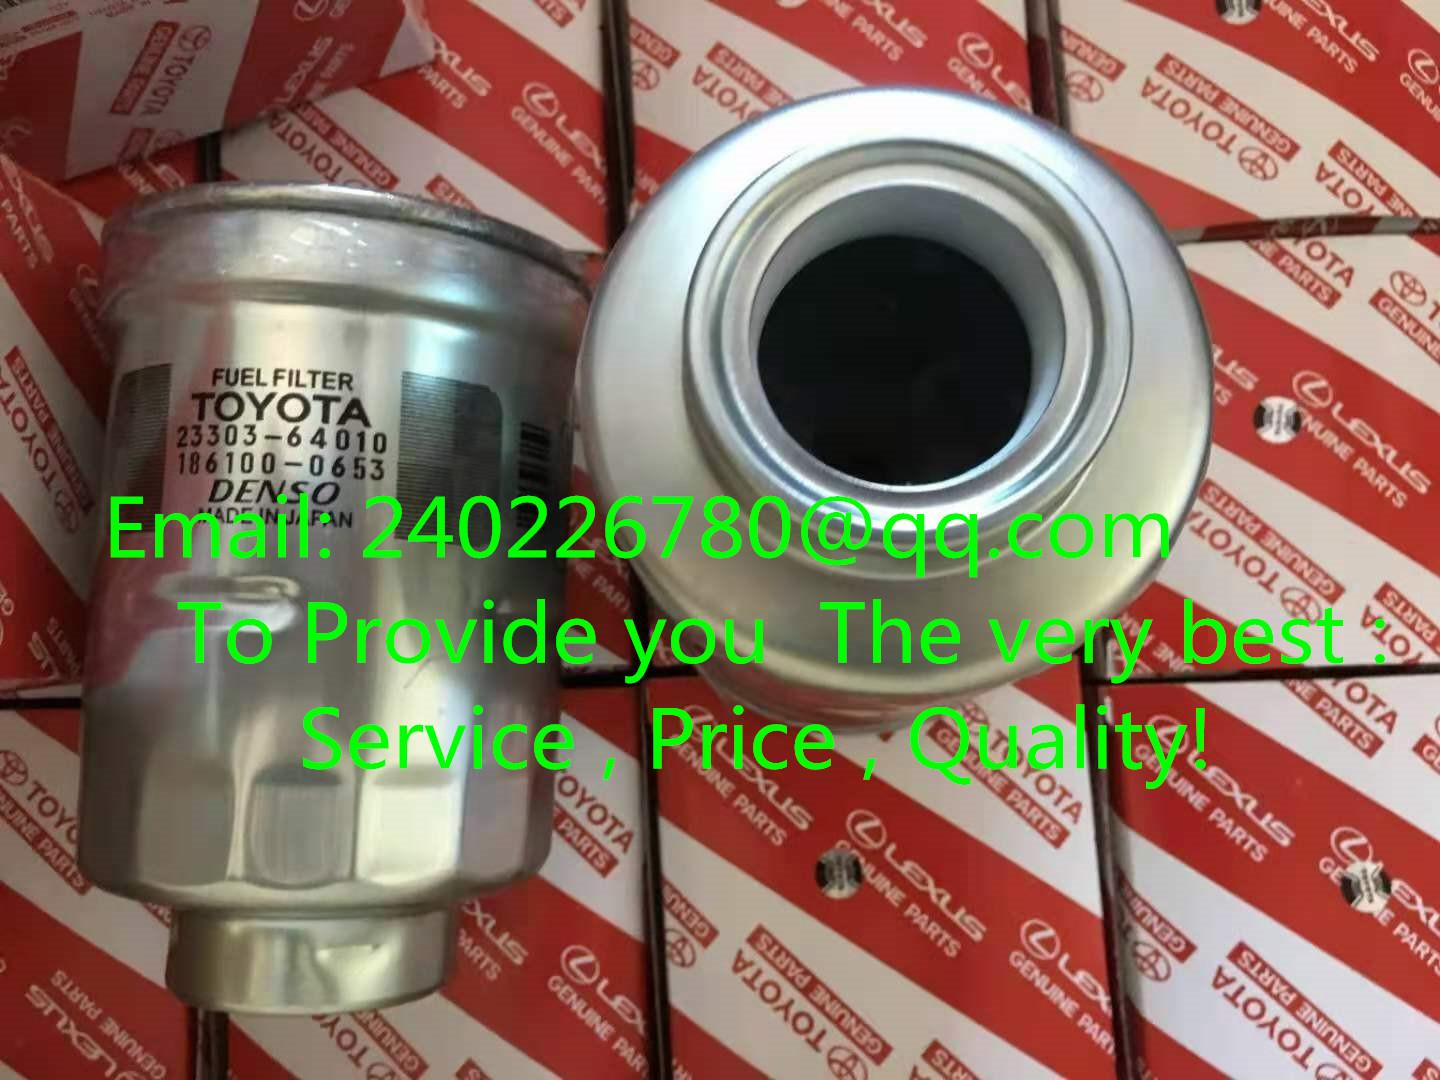 FOR TOYOTA Hilux  Fuel Filter 23303-64010  2330364010 23303-64020  23390-64010